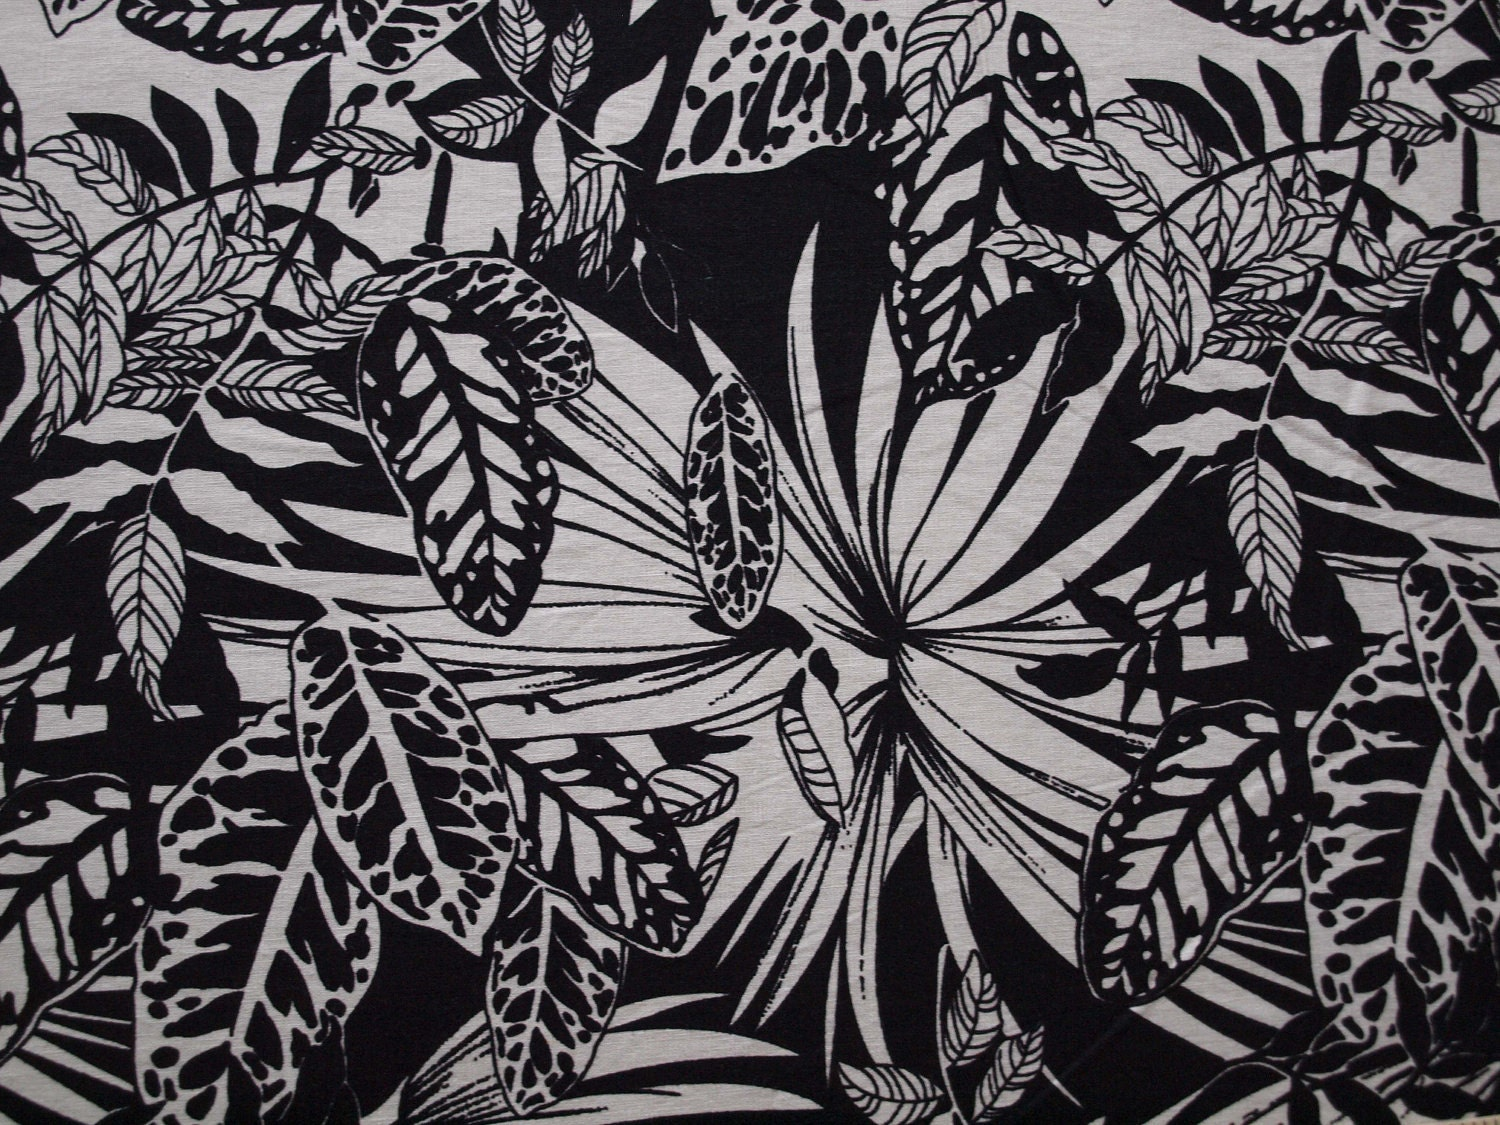 Hawaiian Floral Print Black and Cream Linen Cotton Blend